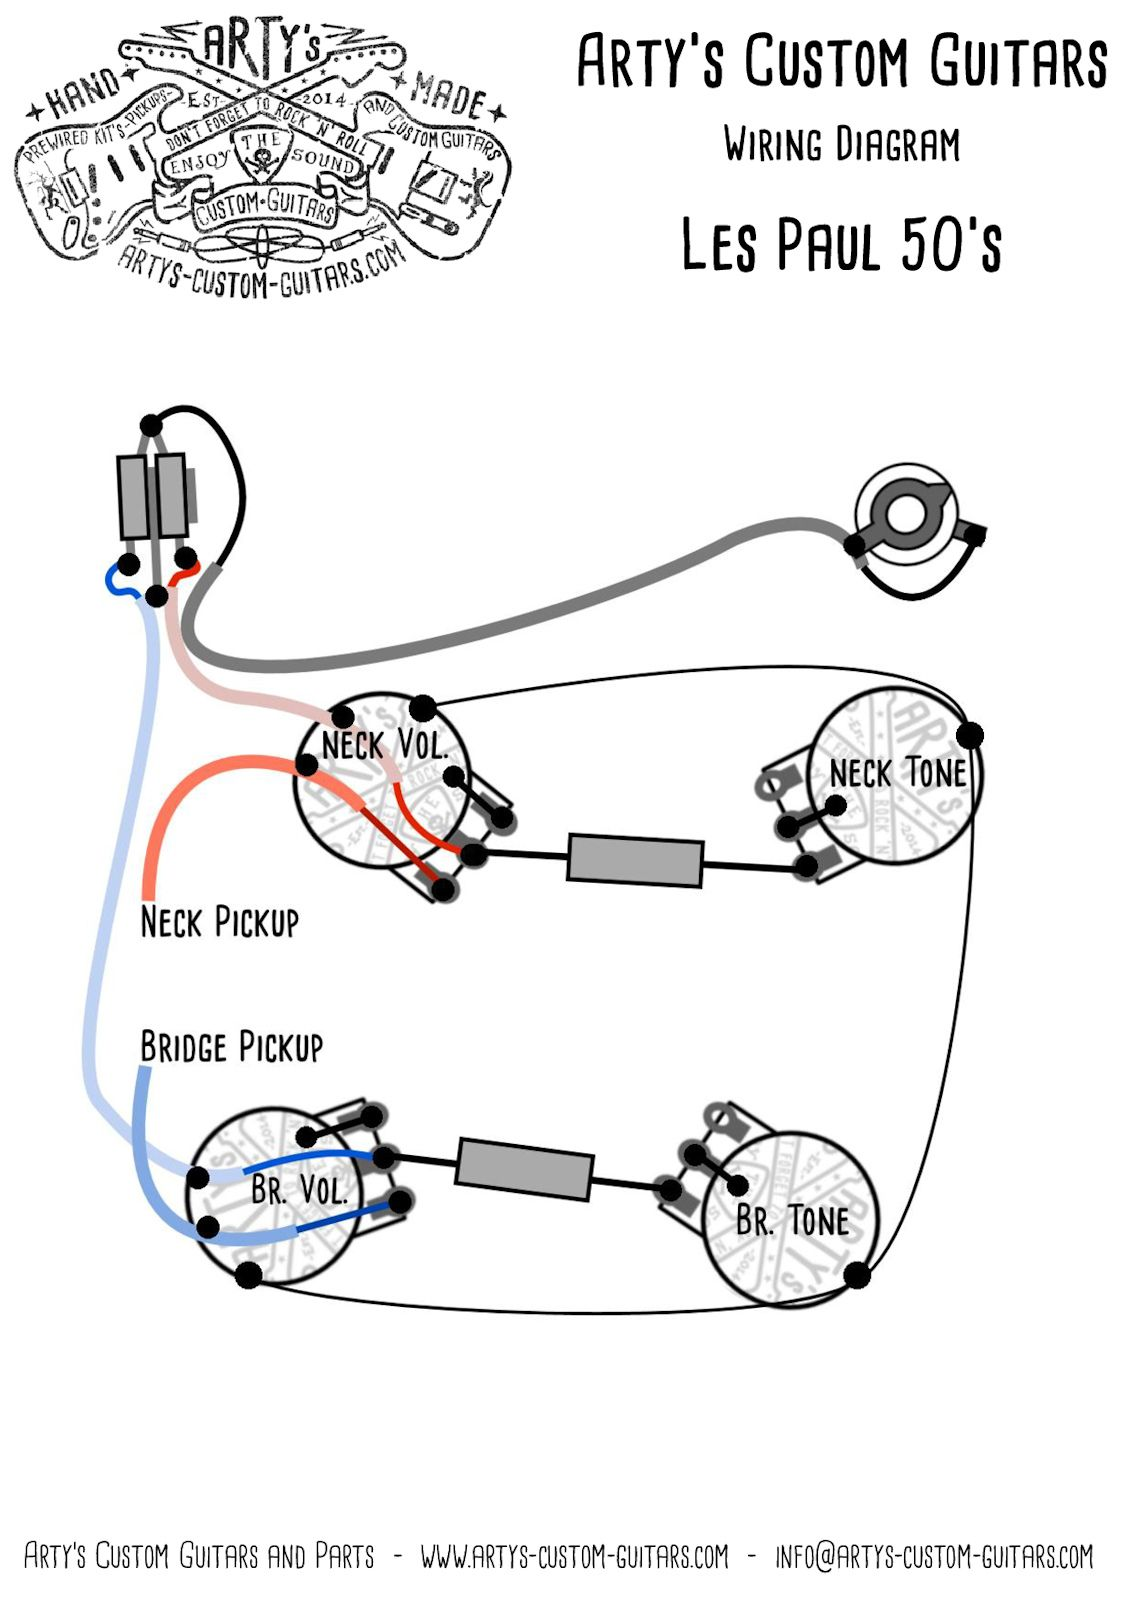 arty s custom guitars wiring diagram plan les paul assembly harness [ 1131 x 1600 Pixel ]